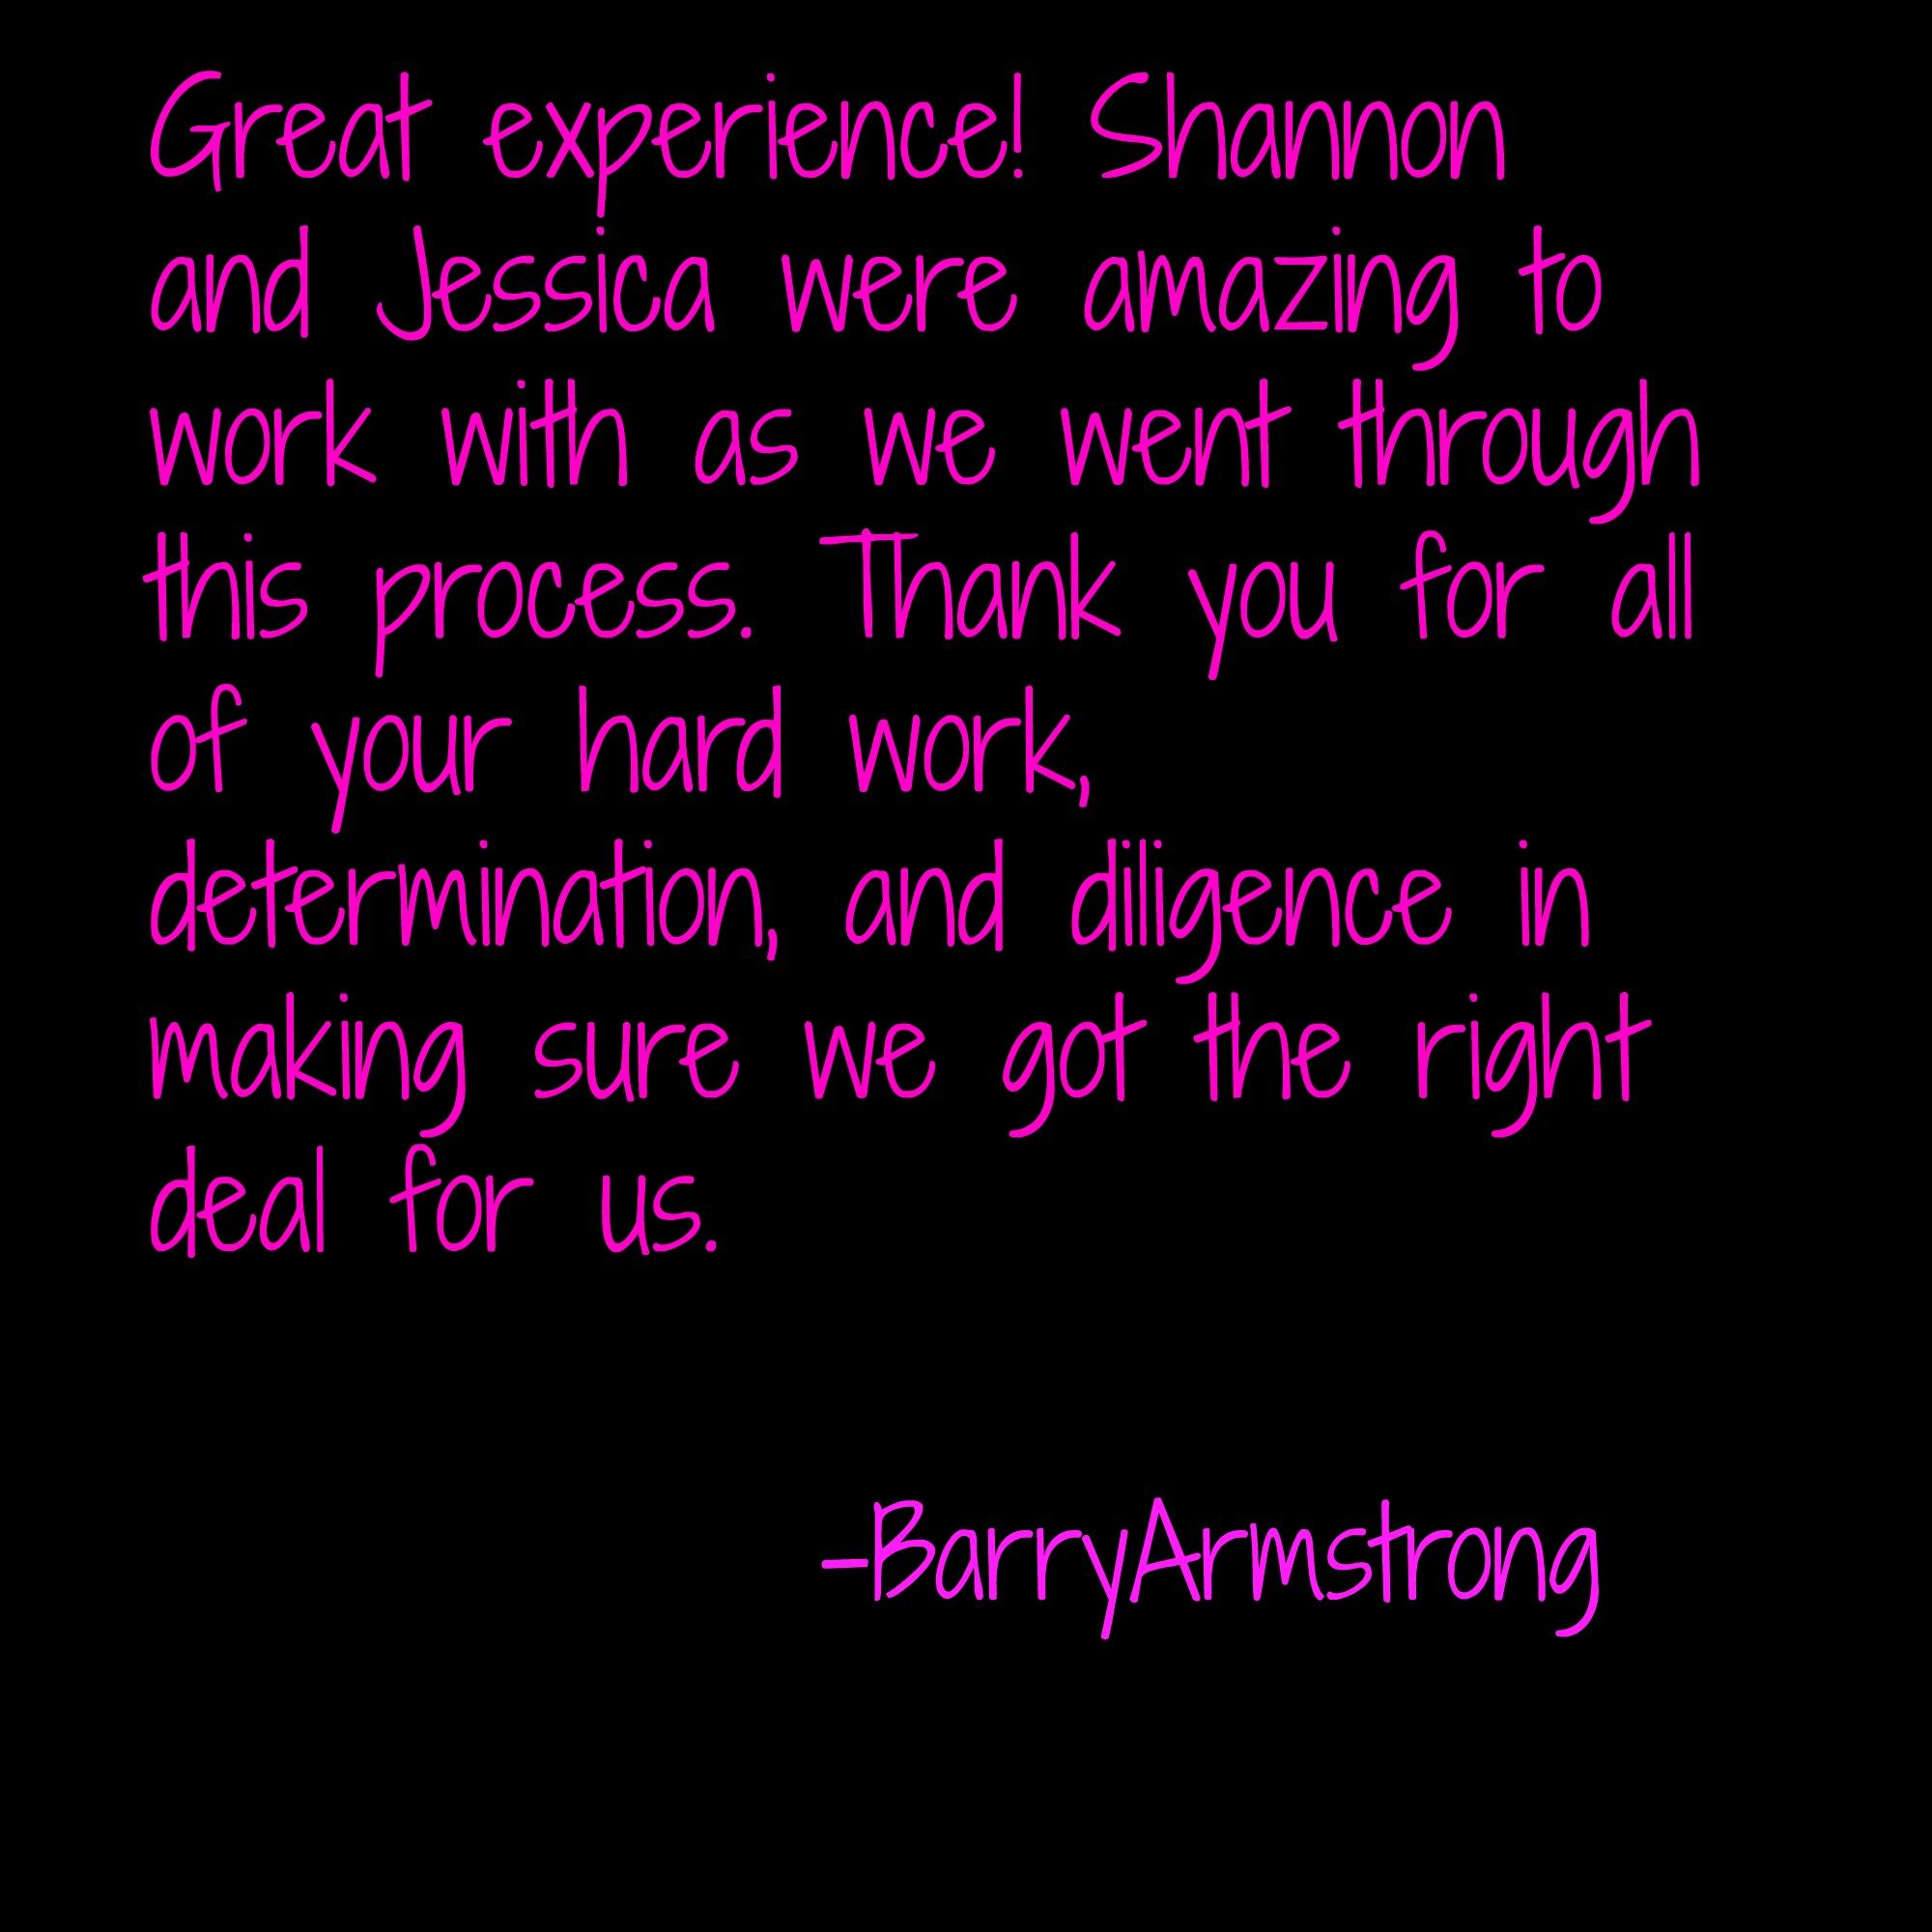 Thank You For Such Kind Words Regarding Jessica And Shannon They